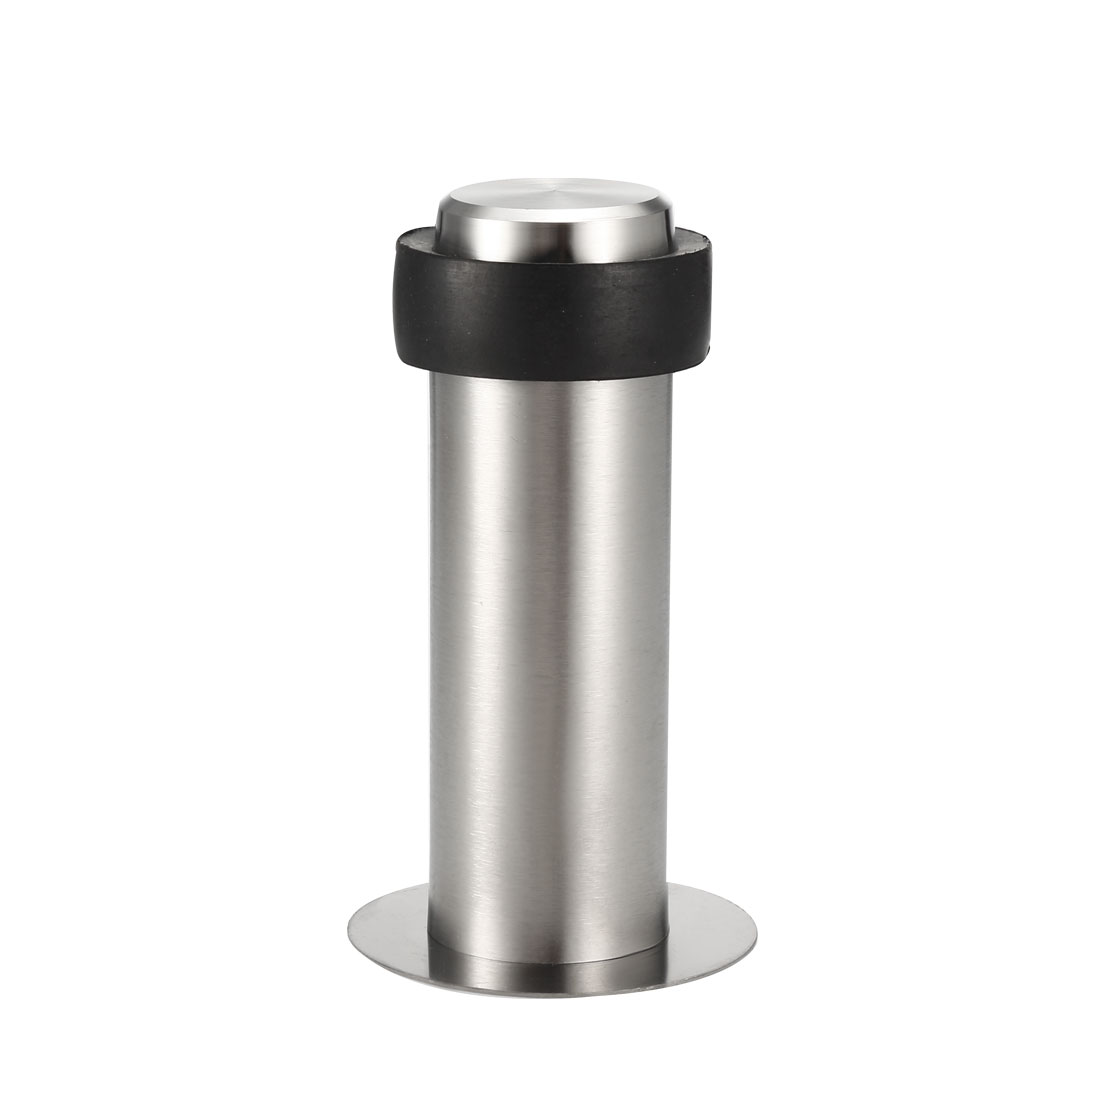 Stainless Steel Door Stopper Cylindrical Floor Mount Adhesive 100mm Height 2Pcs